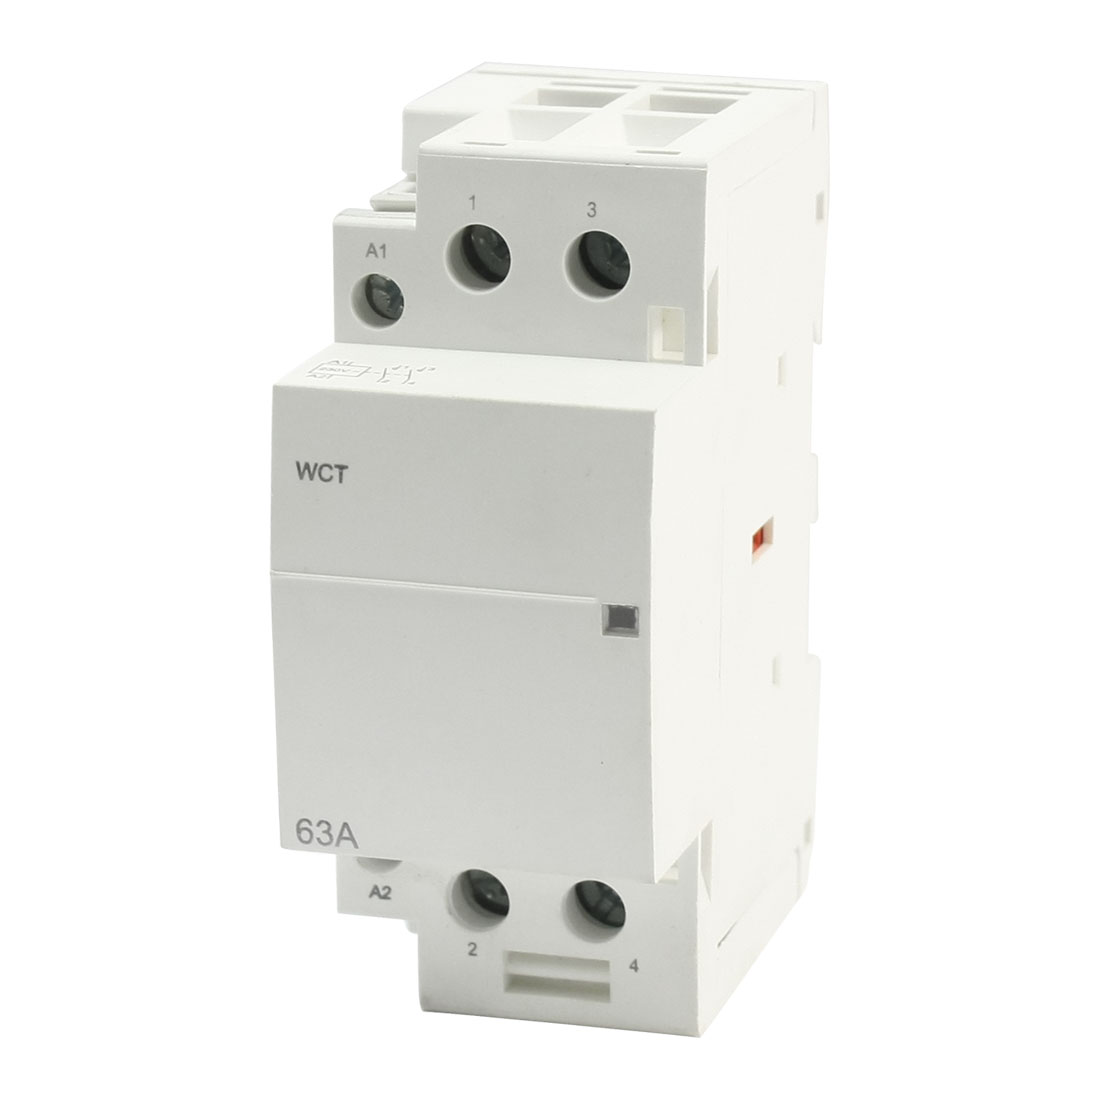 WCT-63A AC 220-240V Coil Voltage 35mm DIN Rail Mount 2-Pole Universal Purpose Household Modular Contactor 63Amp